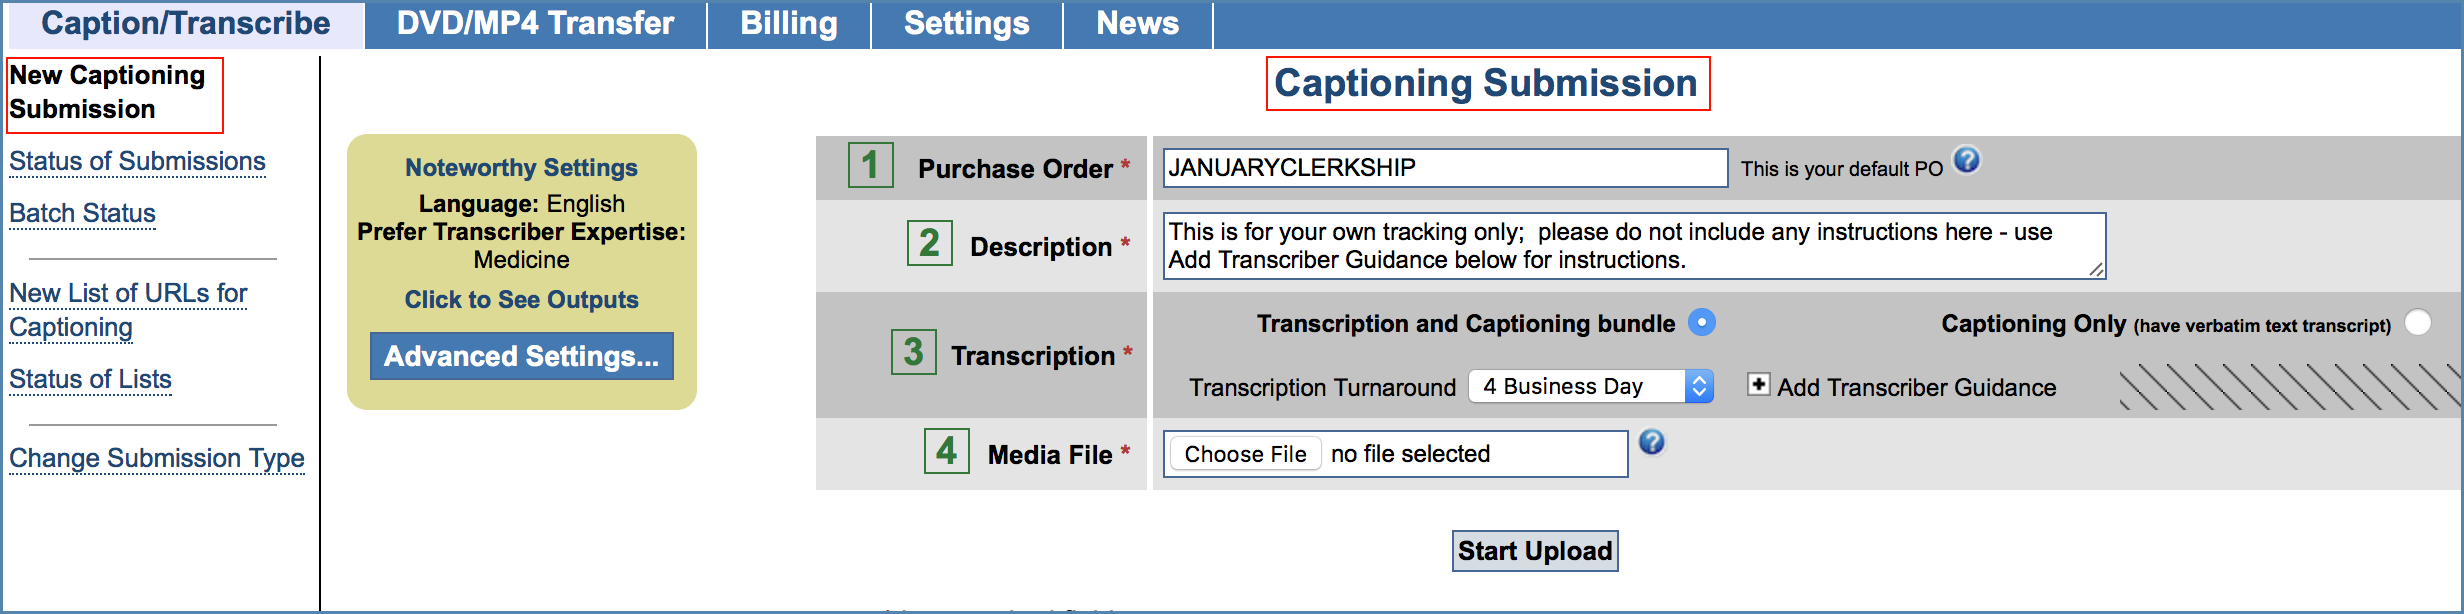 Image of the New Captioning Submission page